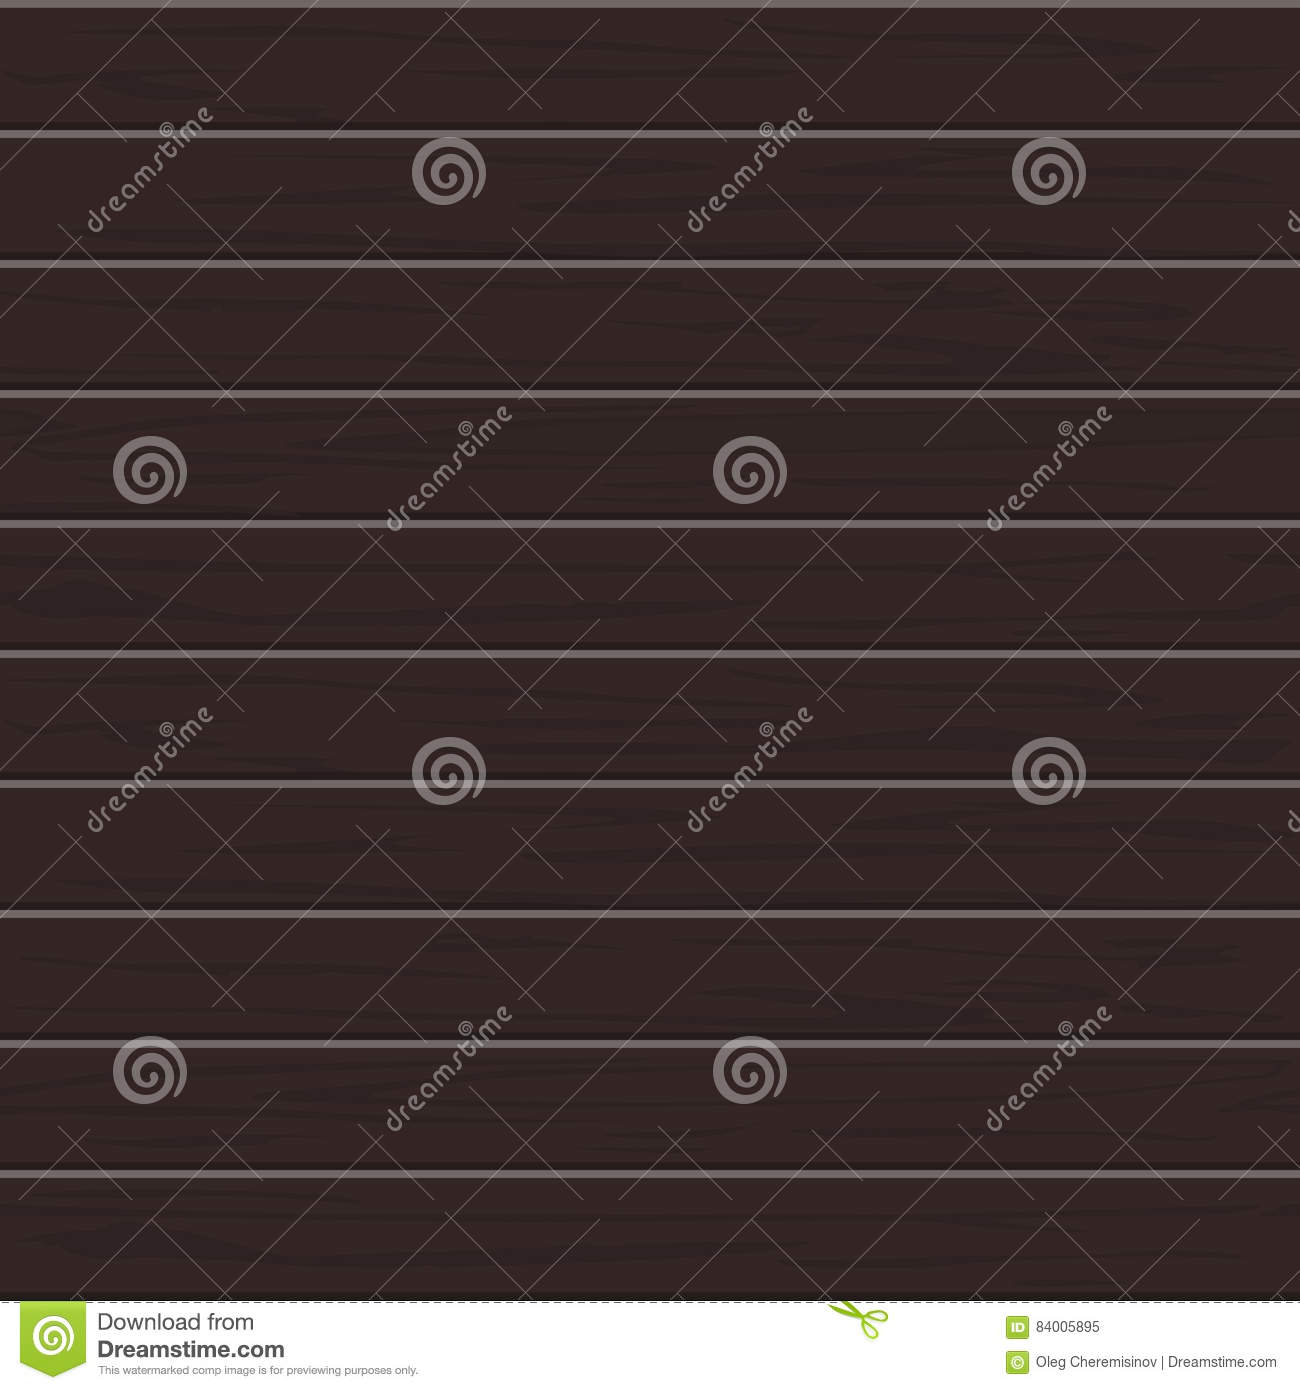 Download Vector Seamless Wood Pattern Wooden Panels Texture Stock